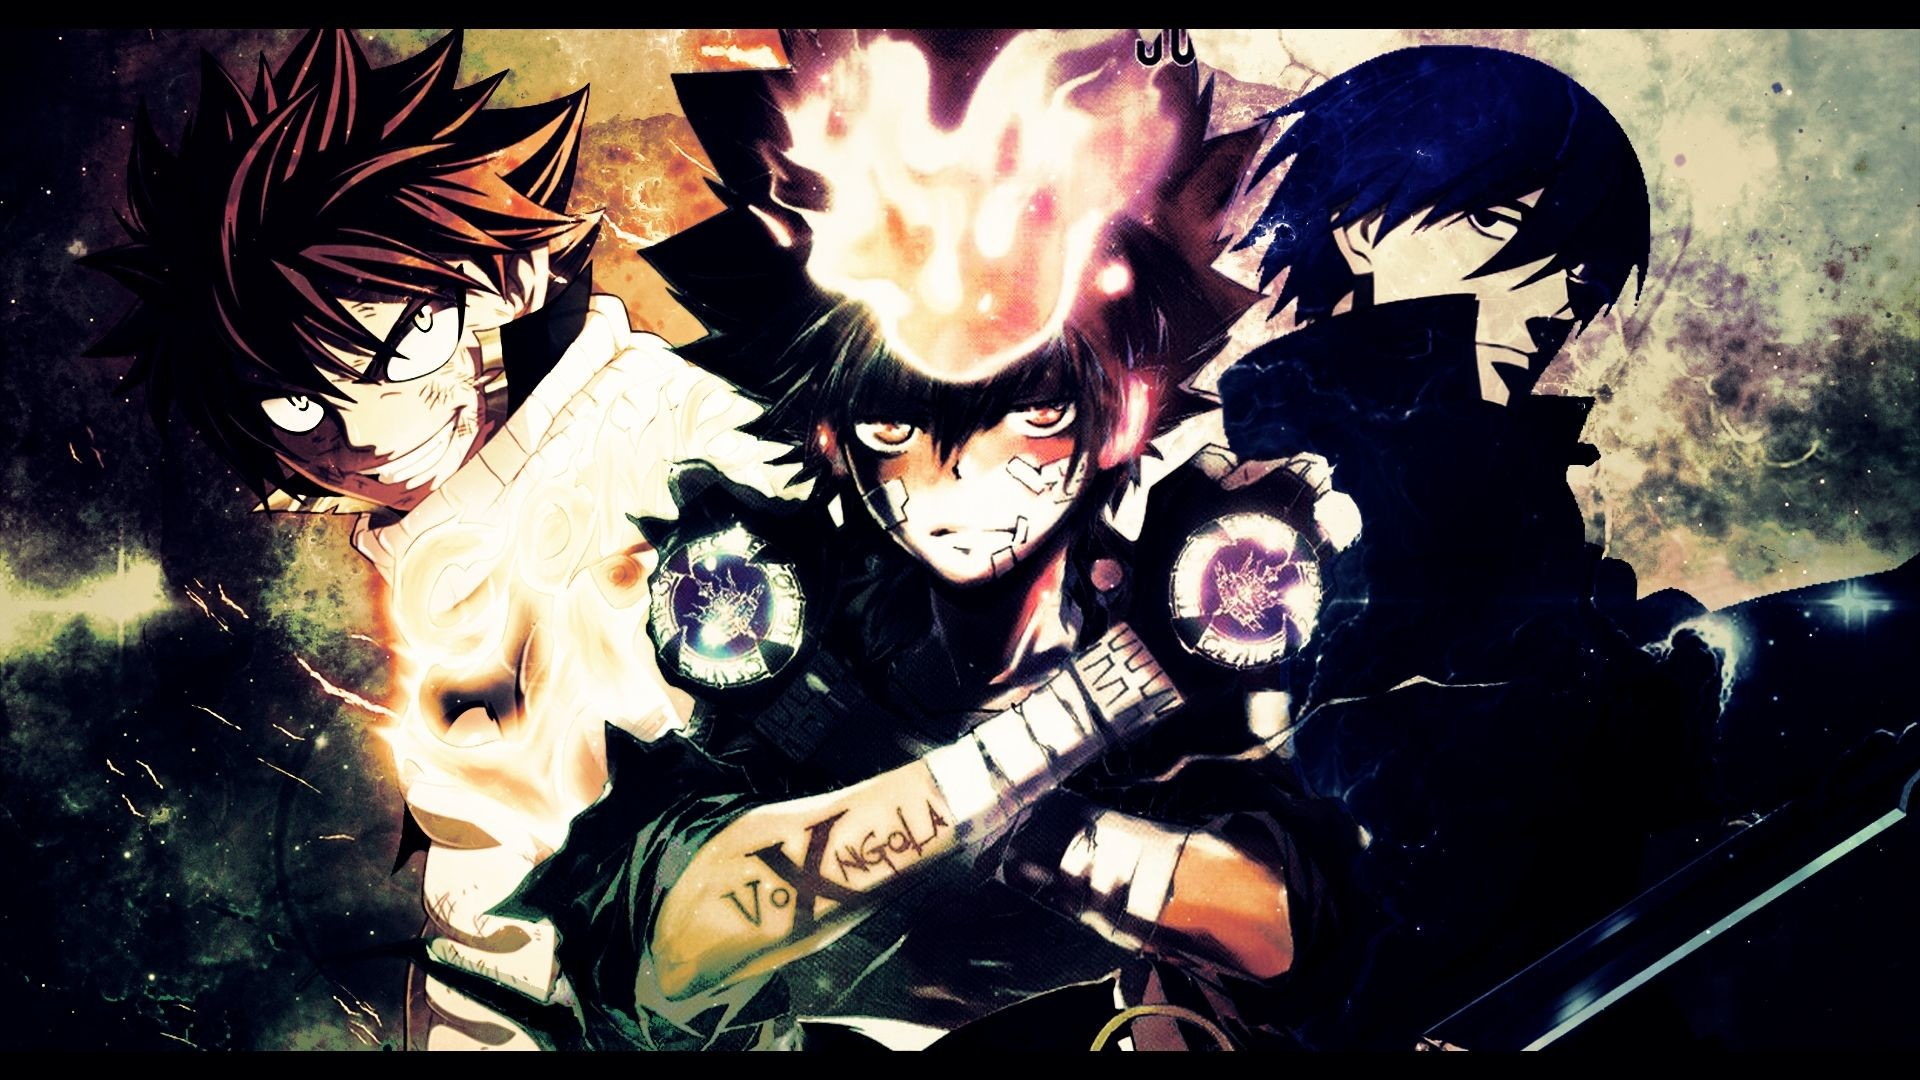 Best Anime Wallpapers Hd Wallpaper Collections 4kwallpaper Wiki